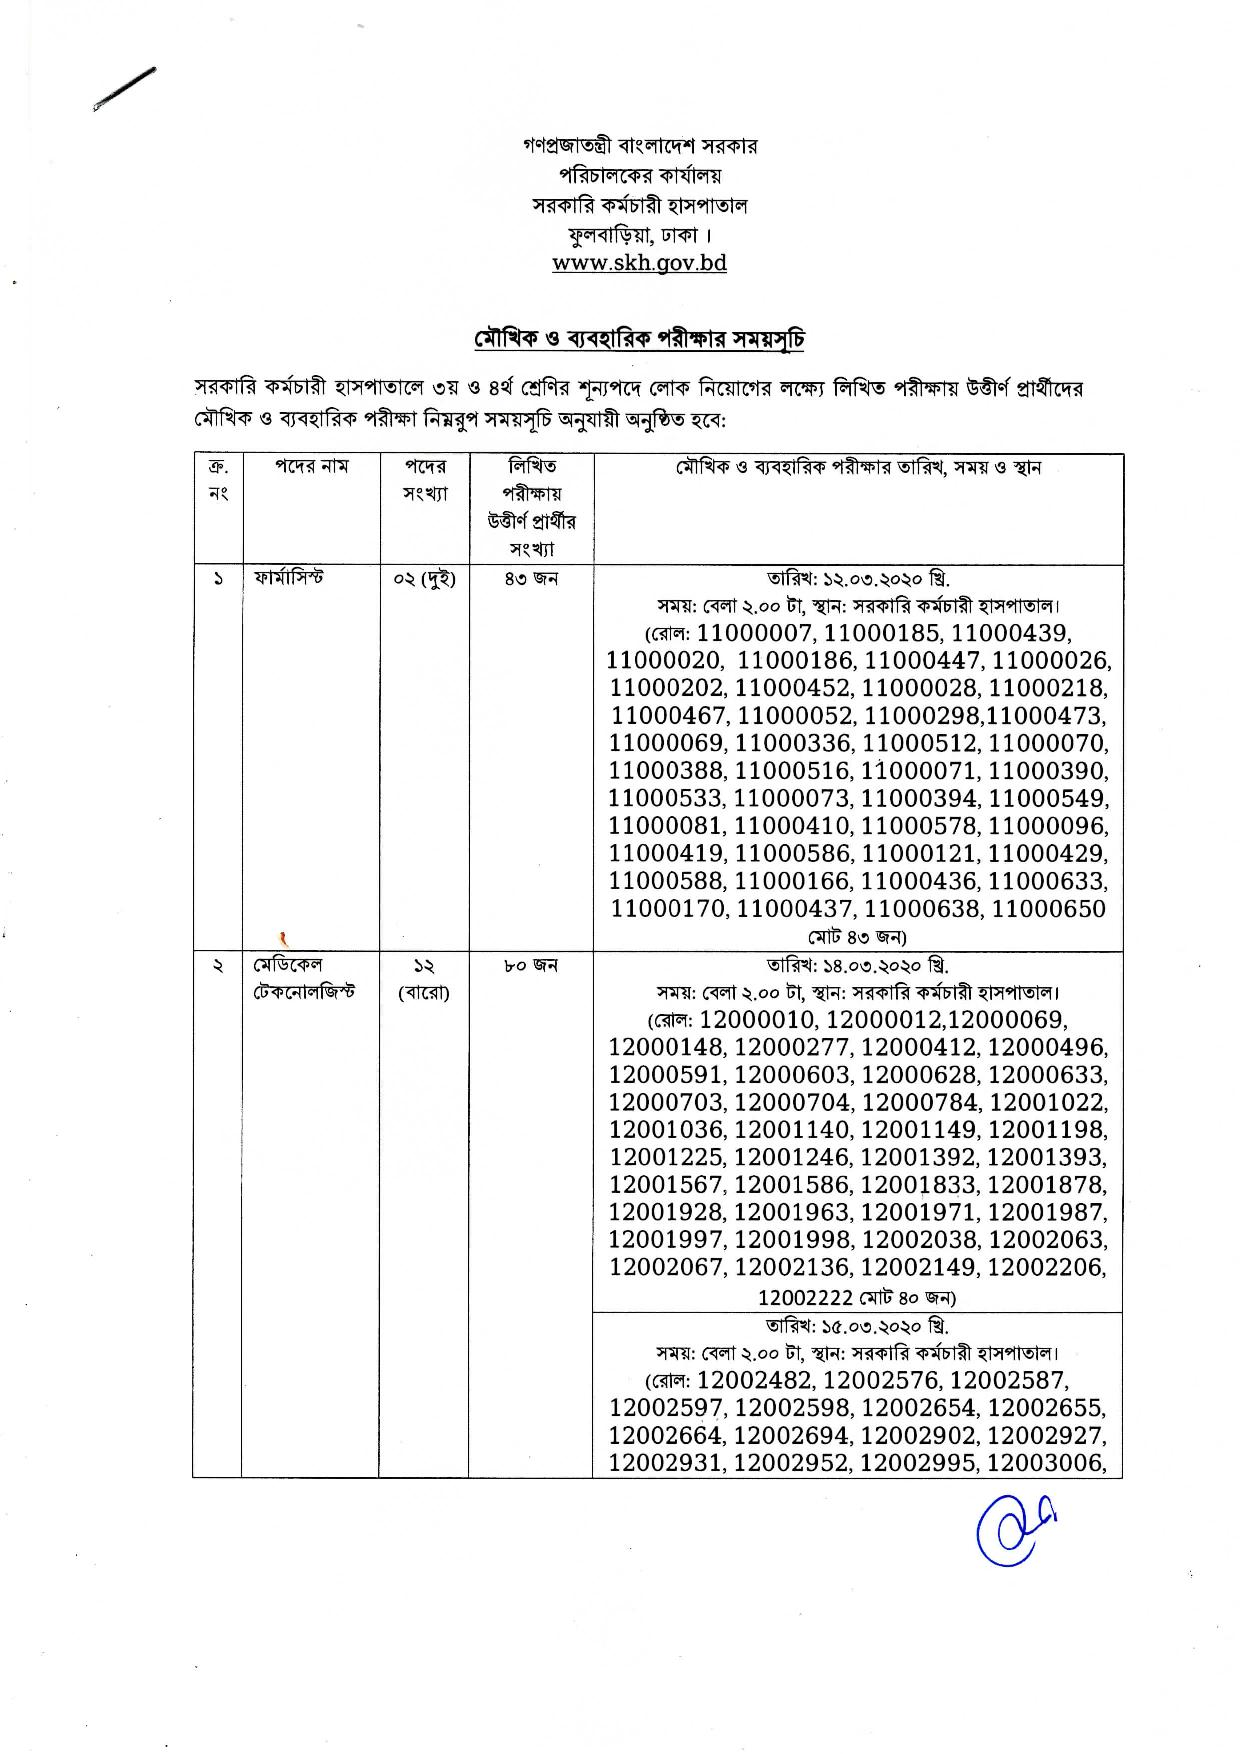 Sarkari Karmachari Hospital (SKH) Viva Exam date and seat plan 2020